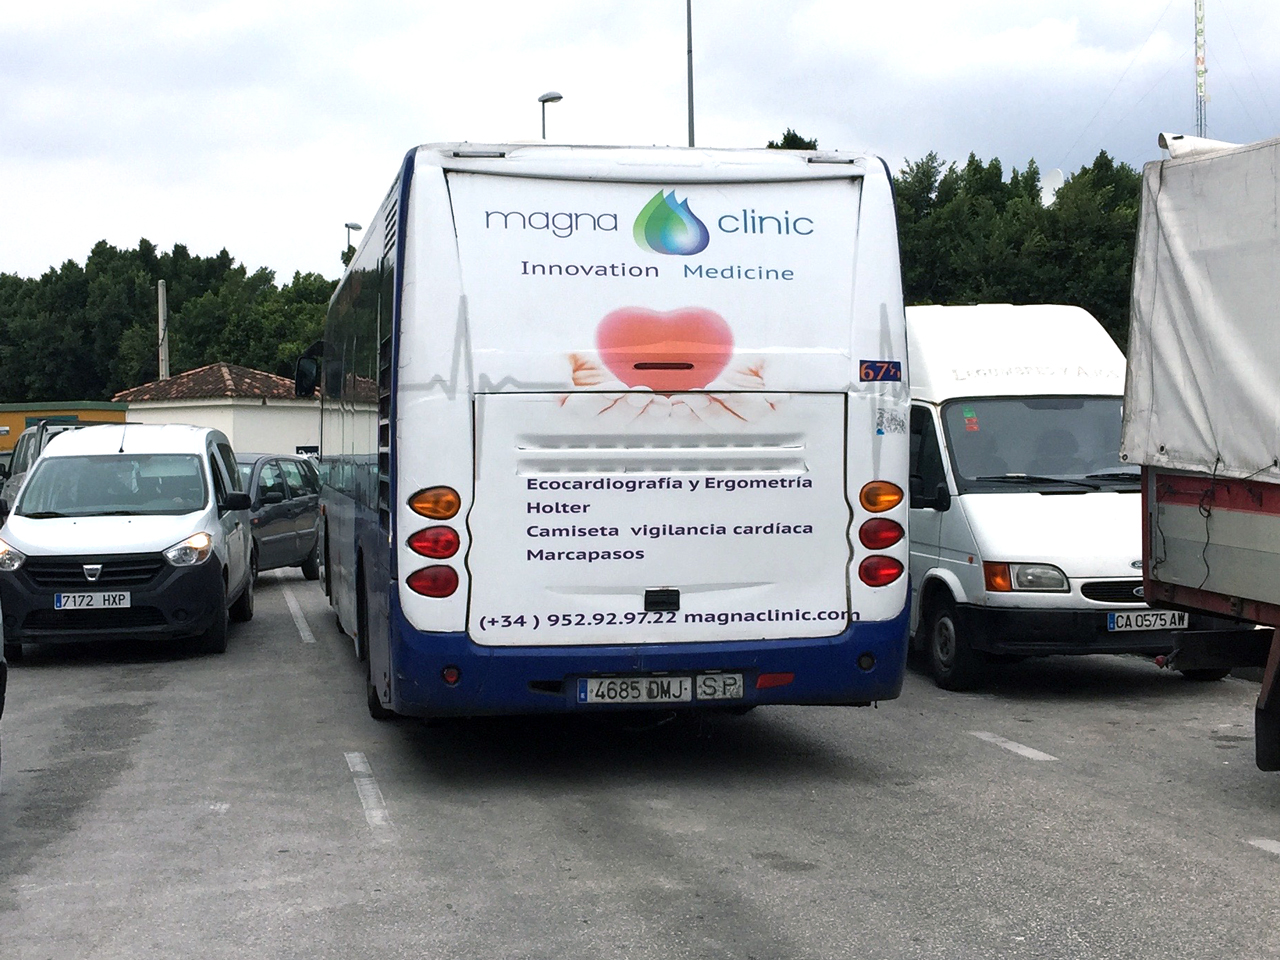 Advertising bus campaign for Magna Clinic